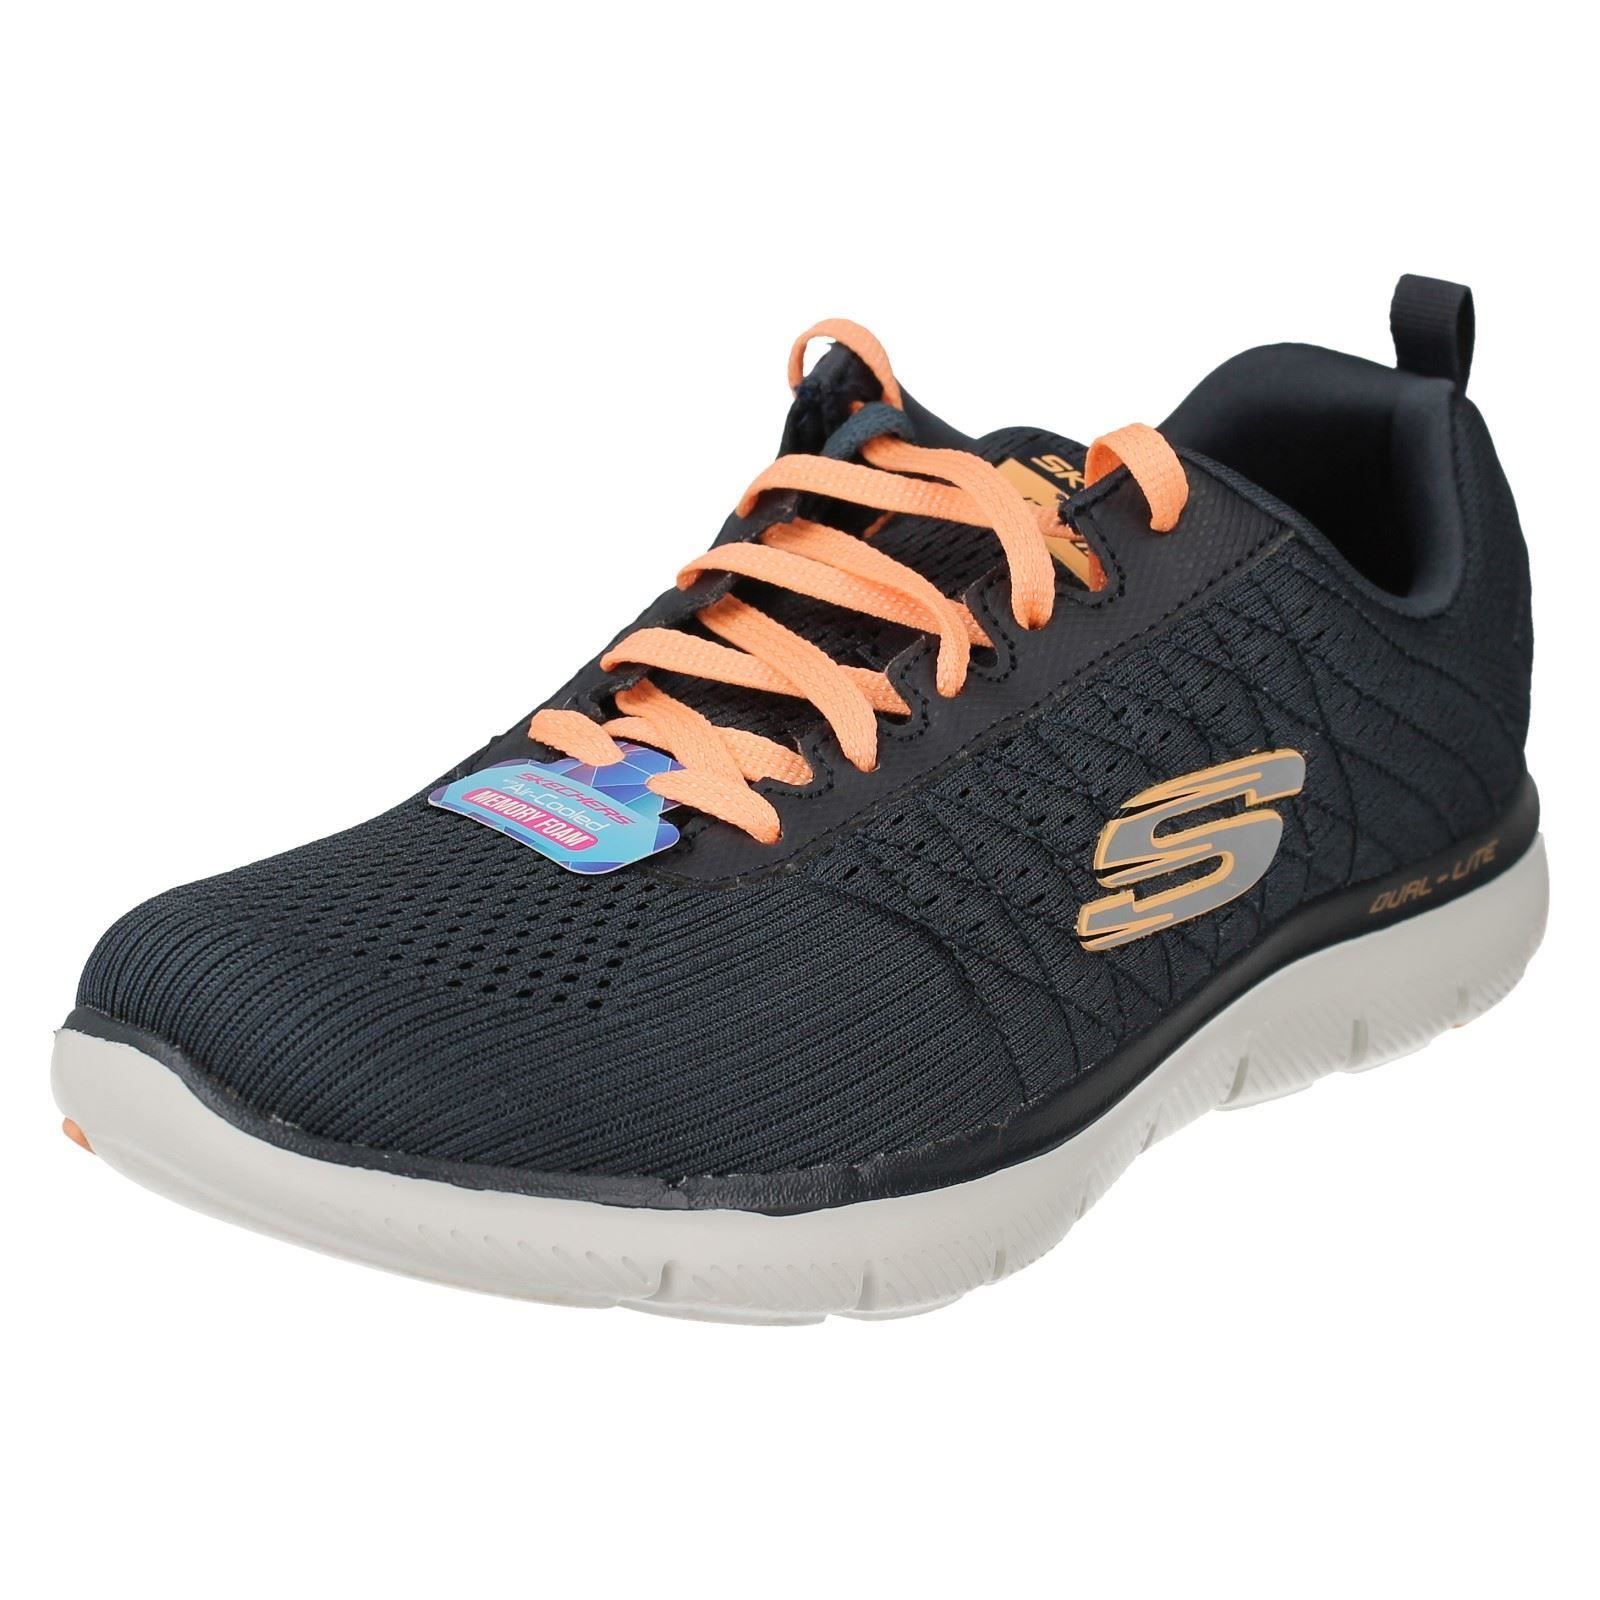 4aea681c3774 Ladies Skechers Flex Appeal 2.0 Break Lace up Running Sports Trainers 12757  Charcoal UK 3 Standard. About this product. Picture 1 of 10  Picture 2 of  10 ...